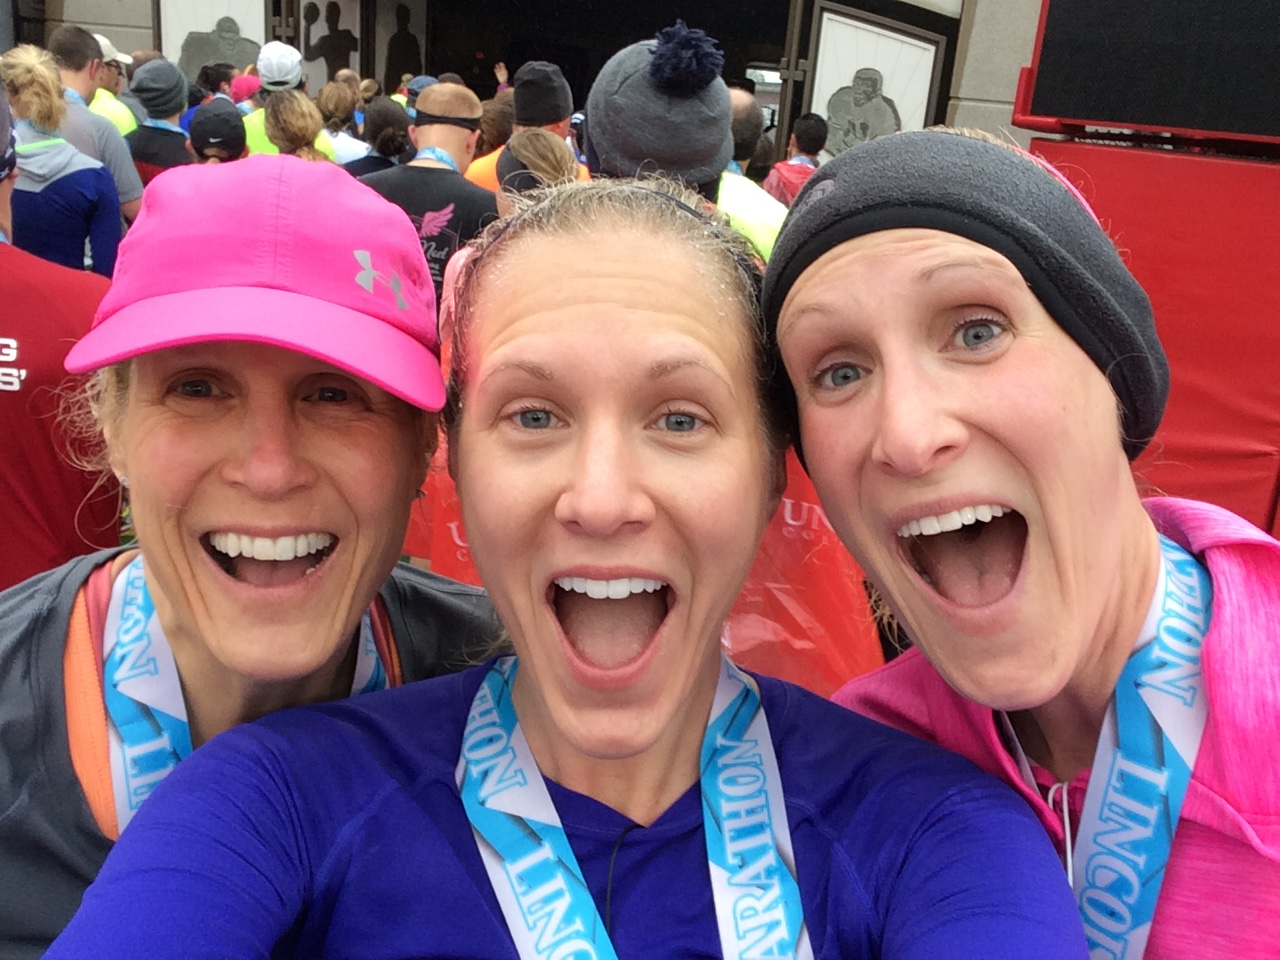 WE FREAKING DID IT. Two seconds of elation and joy before the freezing post-race body shock set in.